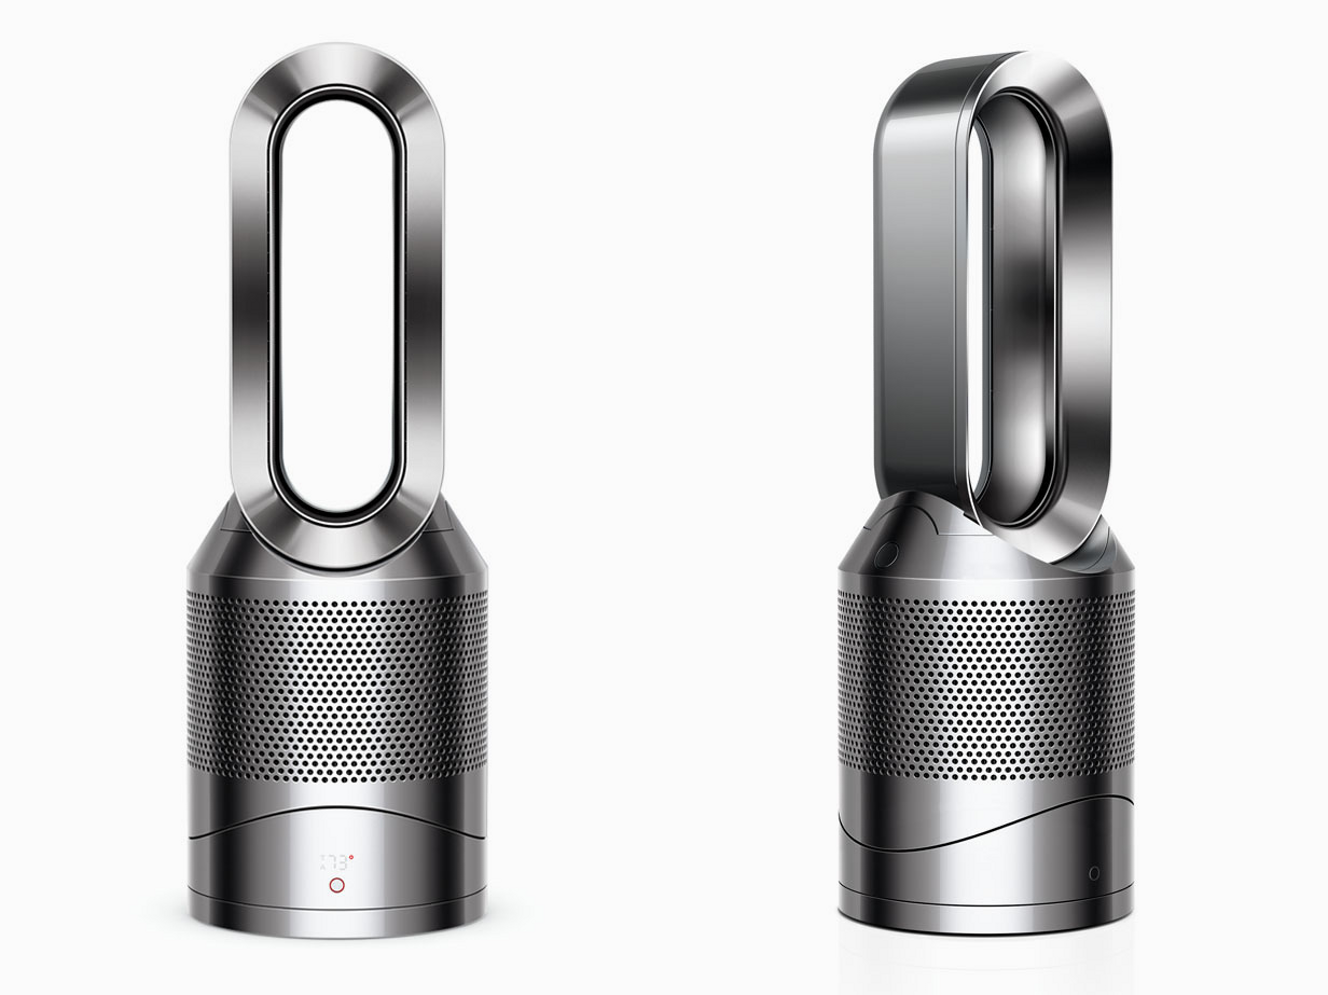 Dyson hot and cool link дайсон запчасти